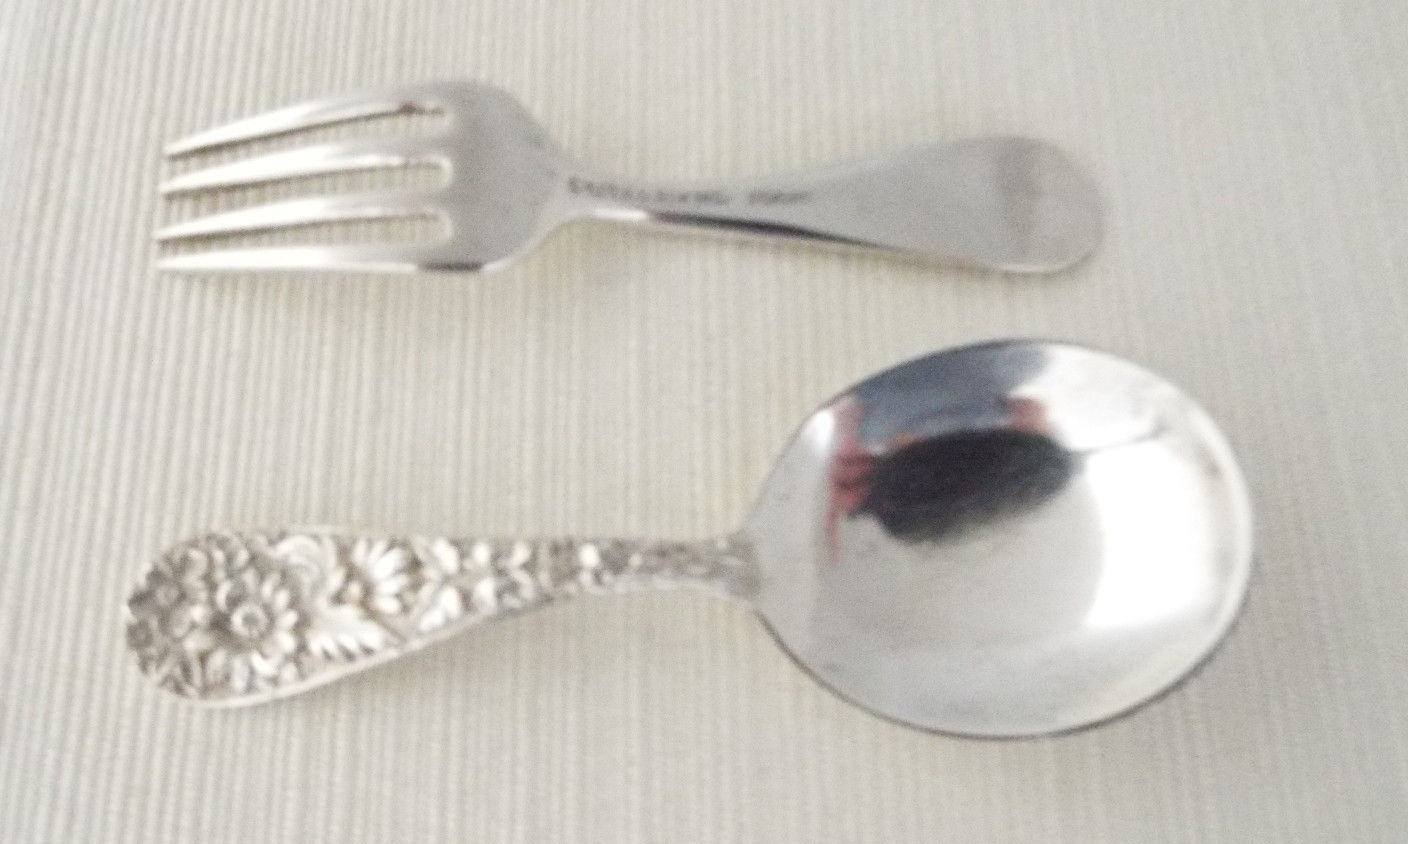 Calvert by Kirk Sterling Silver Cream Soup Spoon 6 1//4/""